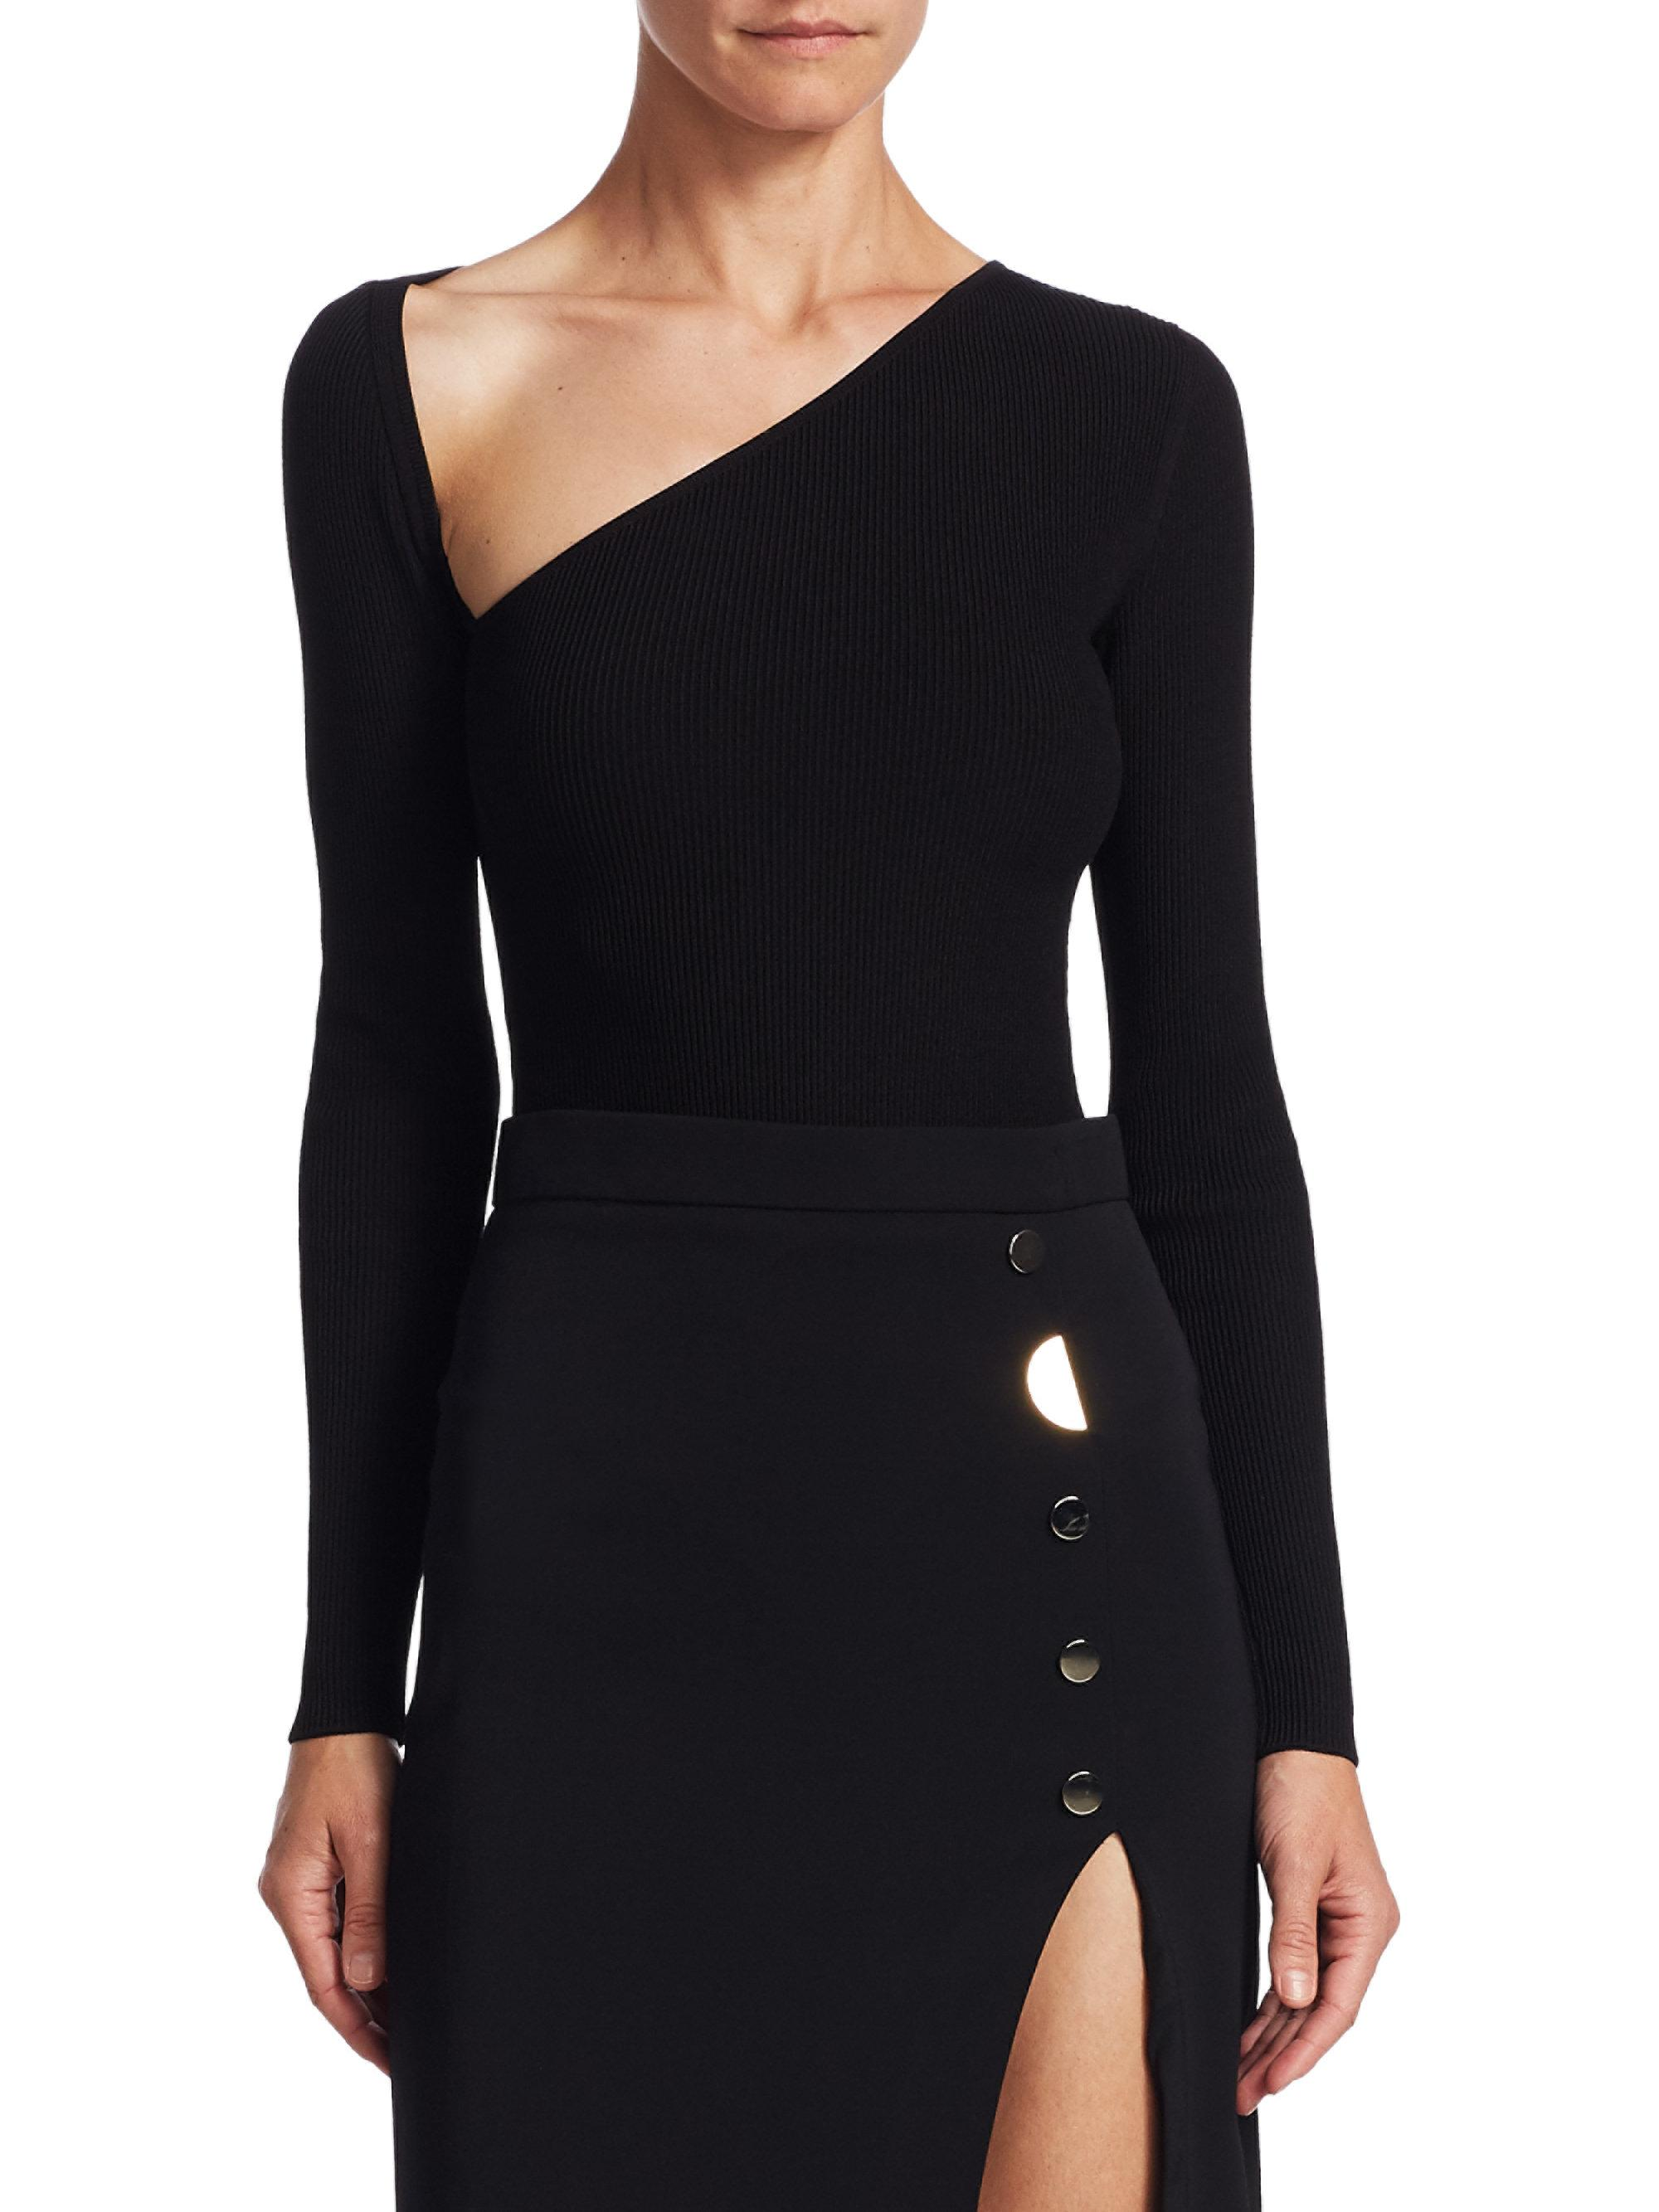 Buy Cheap Clearance Store Cushnie Et Ochs Woman Sequin And Bead-embellished Cotton-mesh Bodysuit Black Size XL Cushnie et Ochs How Much Recommend Discount Free Shipping Professional Clearance Sast 1uu3Y4n5a